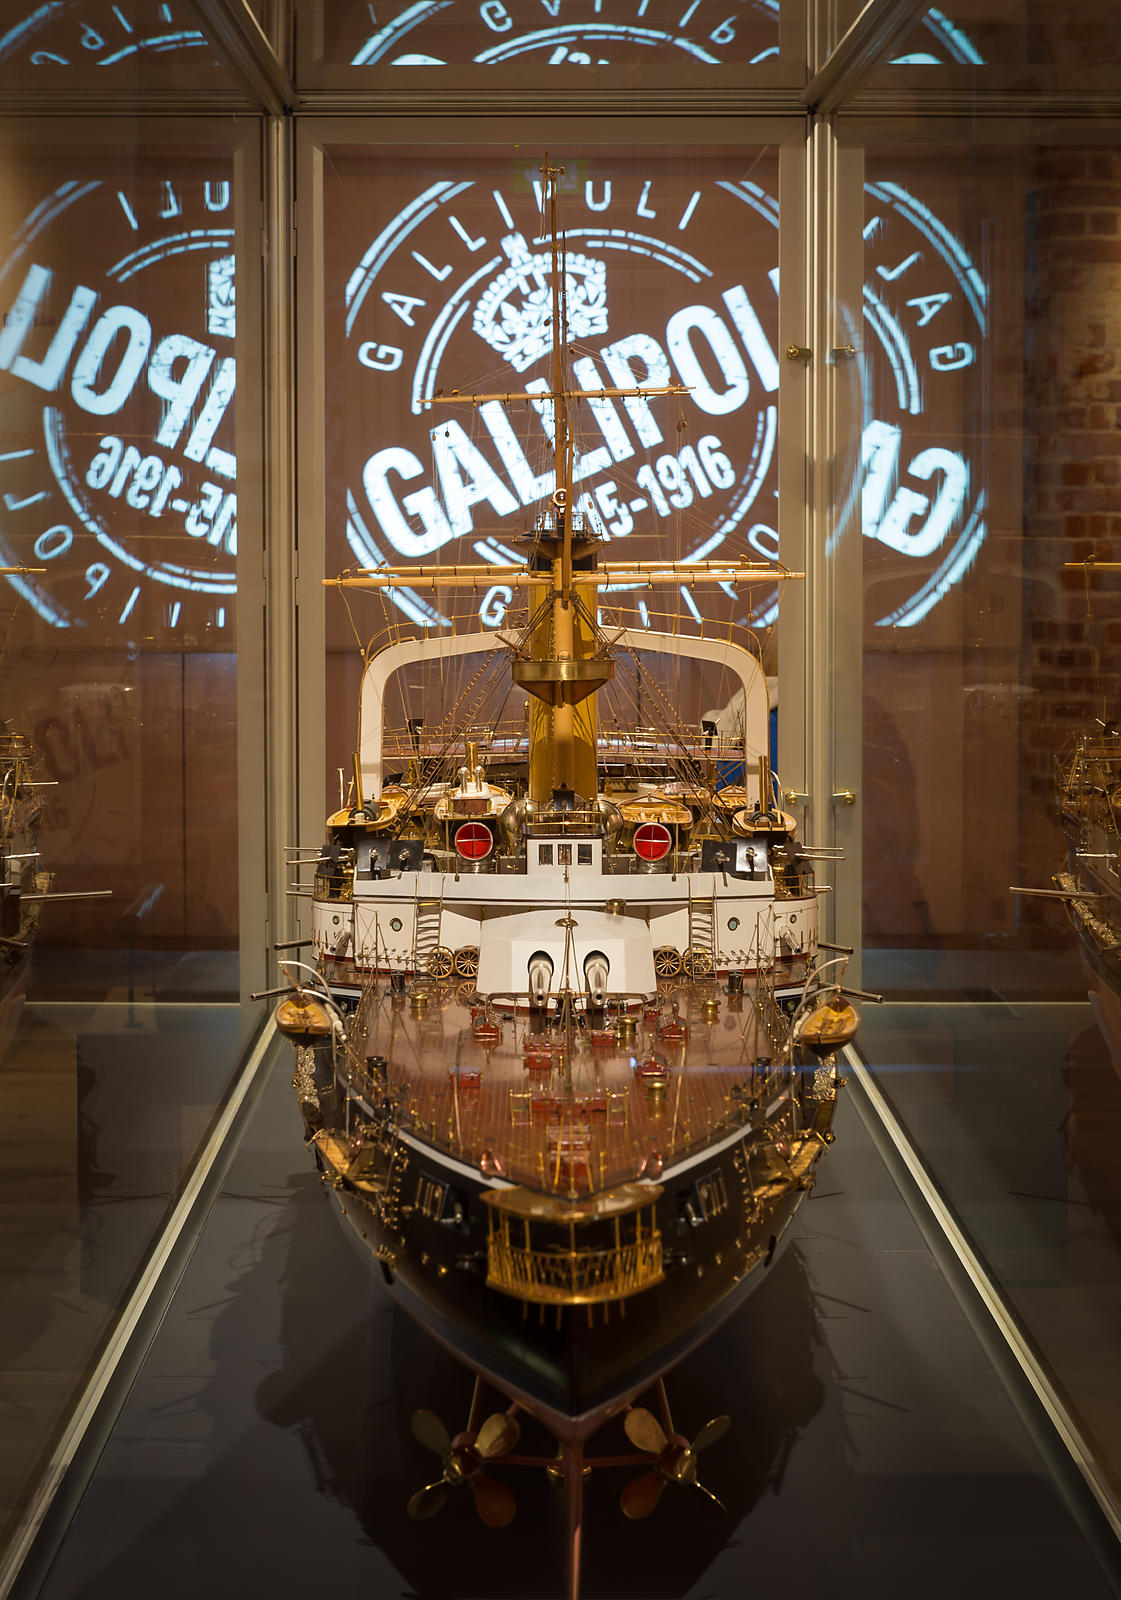 Gallipoli Exhibition at Portsmouth historic Dockyard